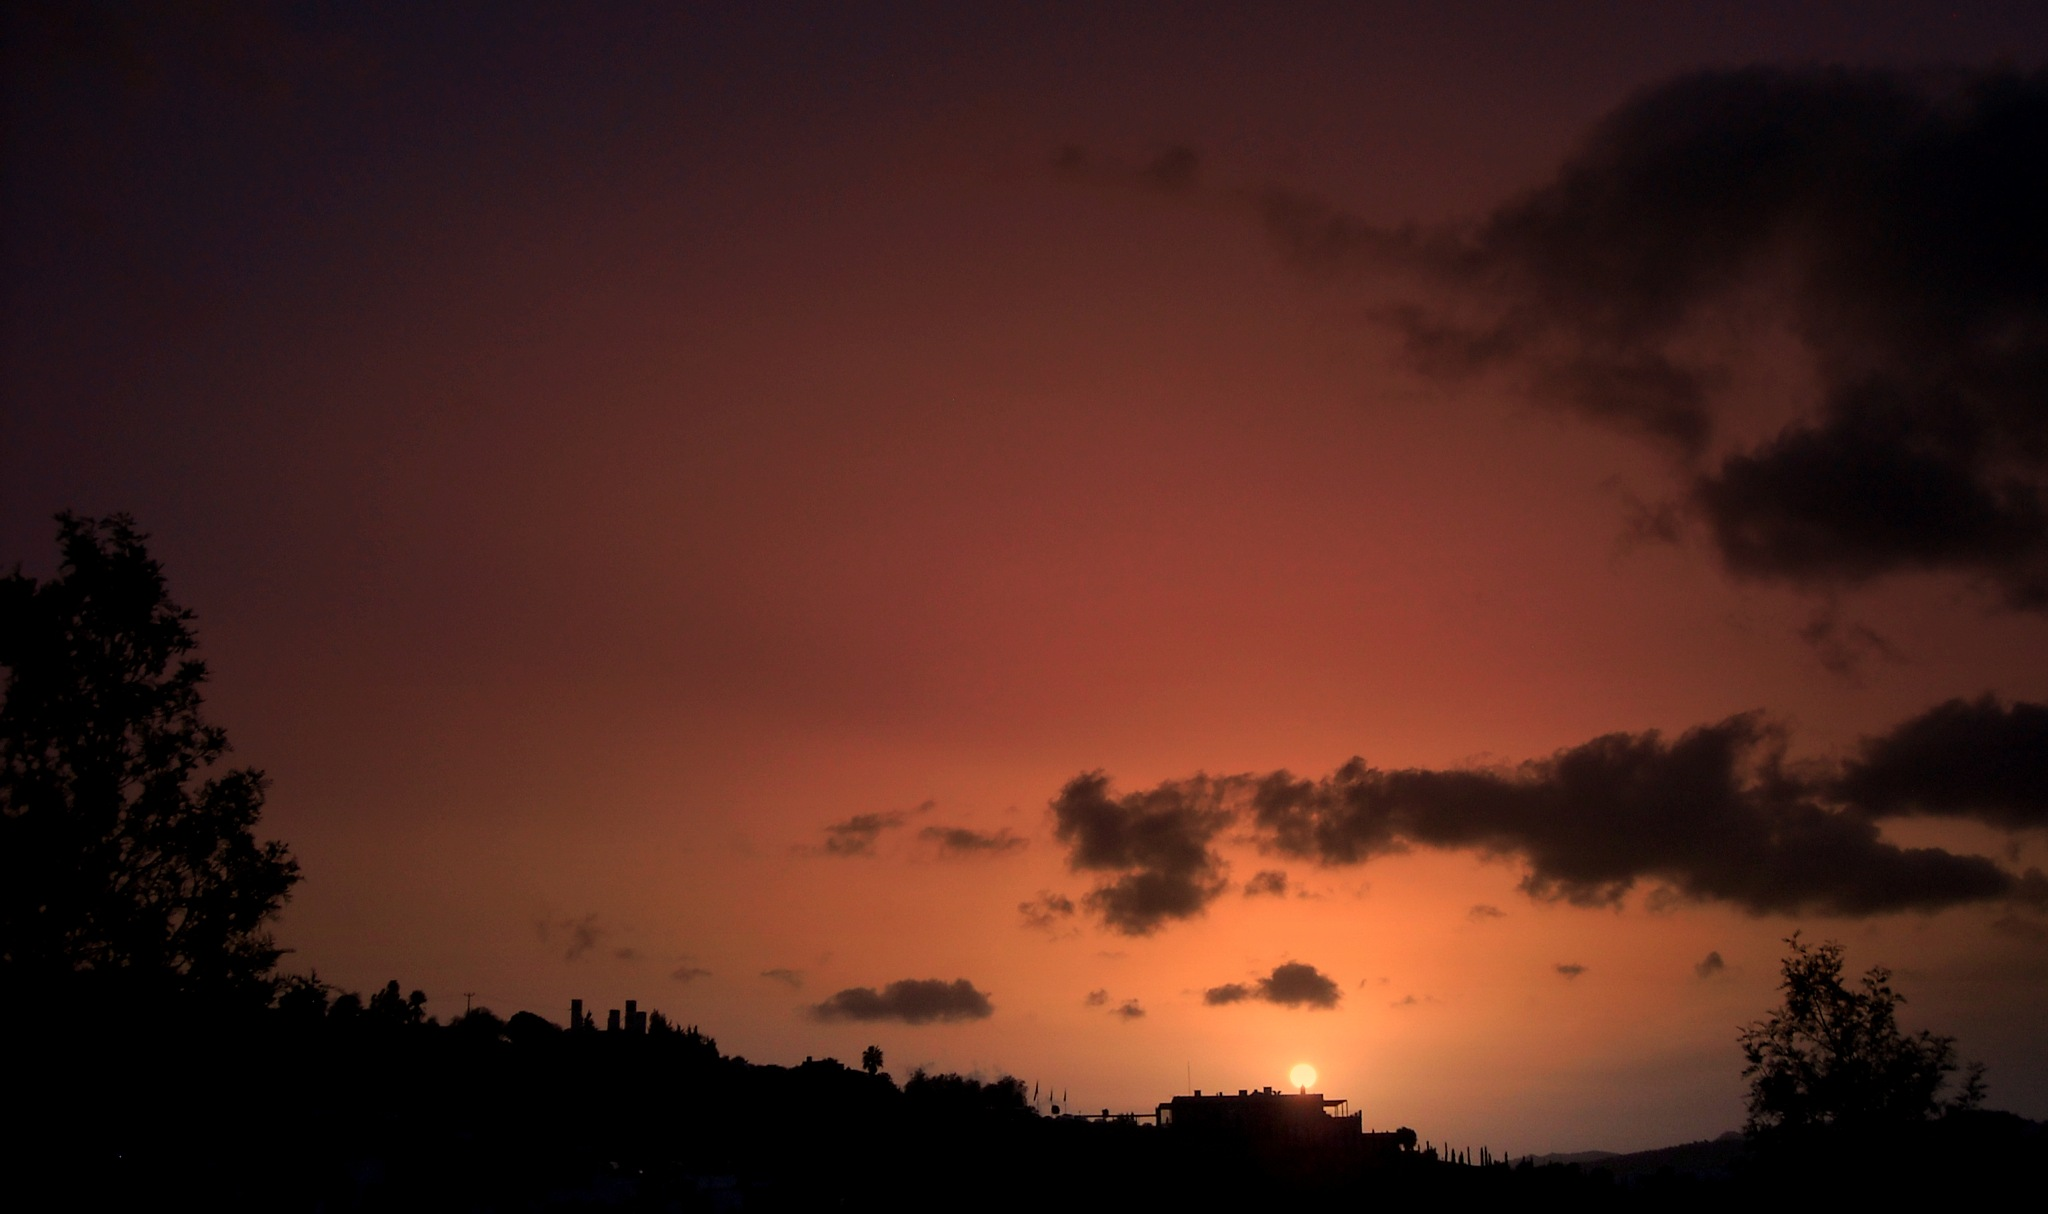 HERE IS THE BITEZ SUNSET  FULL SCREEN by Akin Saner